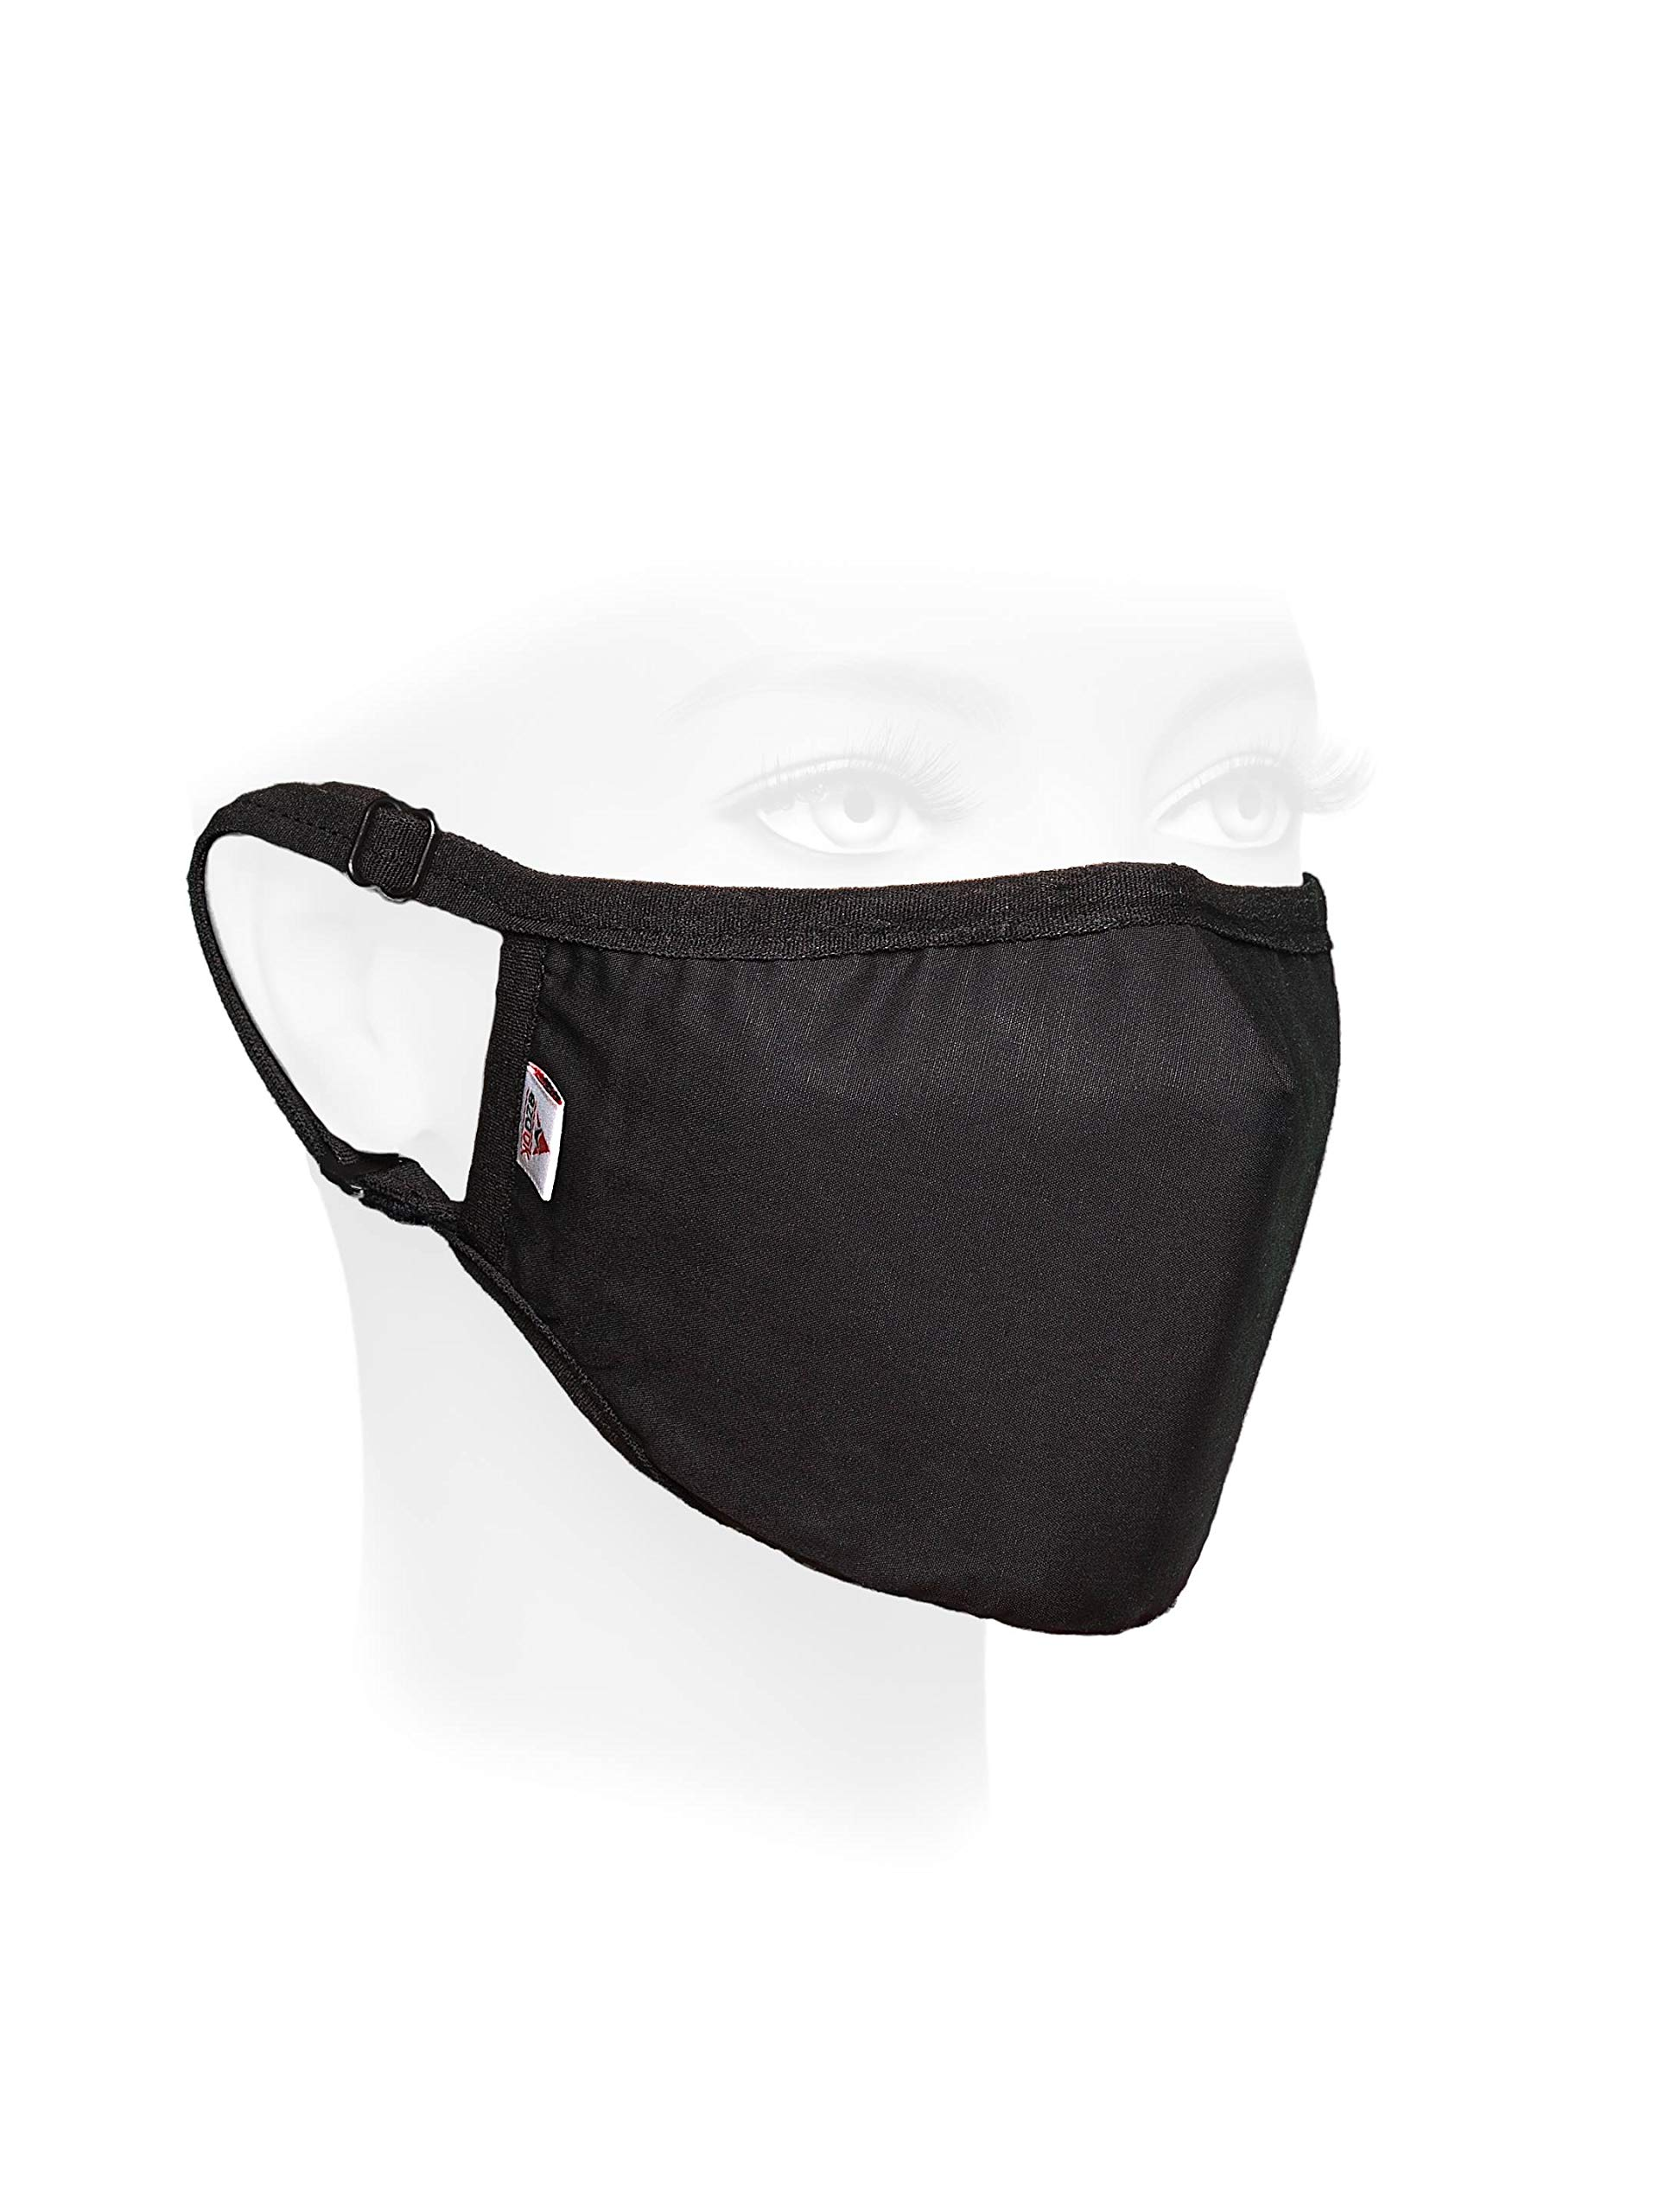 Dustproof Anti Pollution Smoke Protection Cotton Mouth Face Mask with 10 Activated Carbon N99 Filters Adjustable Straps Respirator and Carry Bag. Washable Reusable Air Dust Anti-bacterial Proof